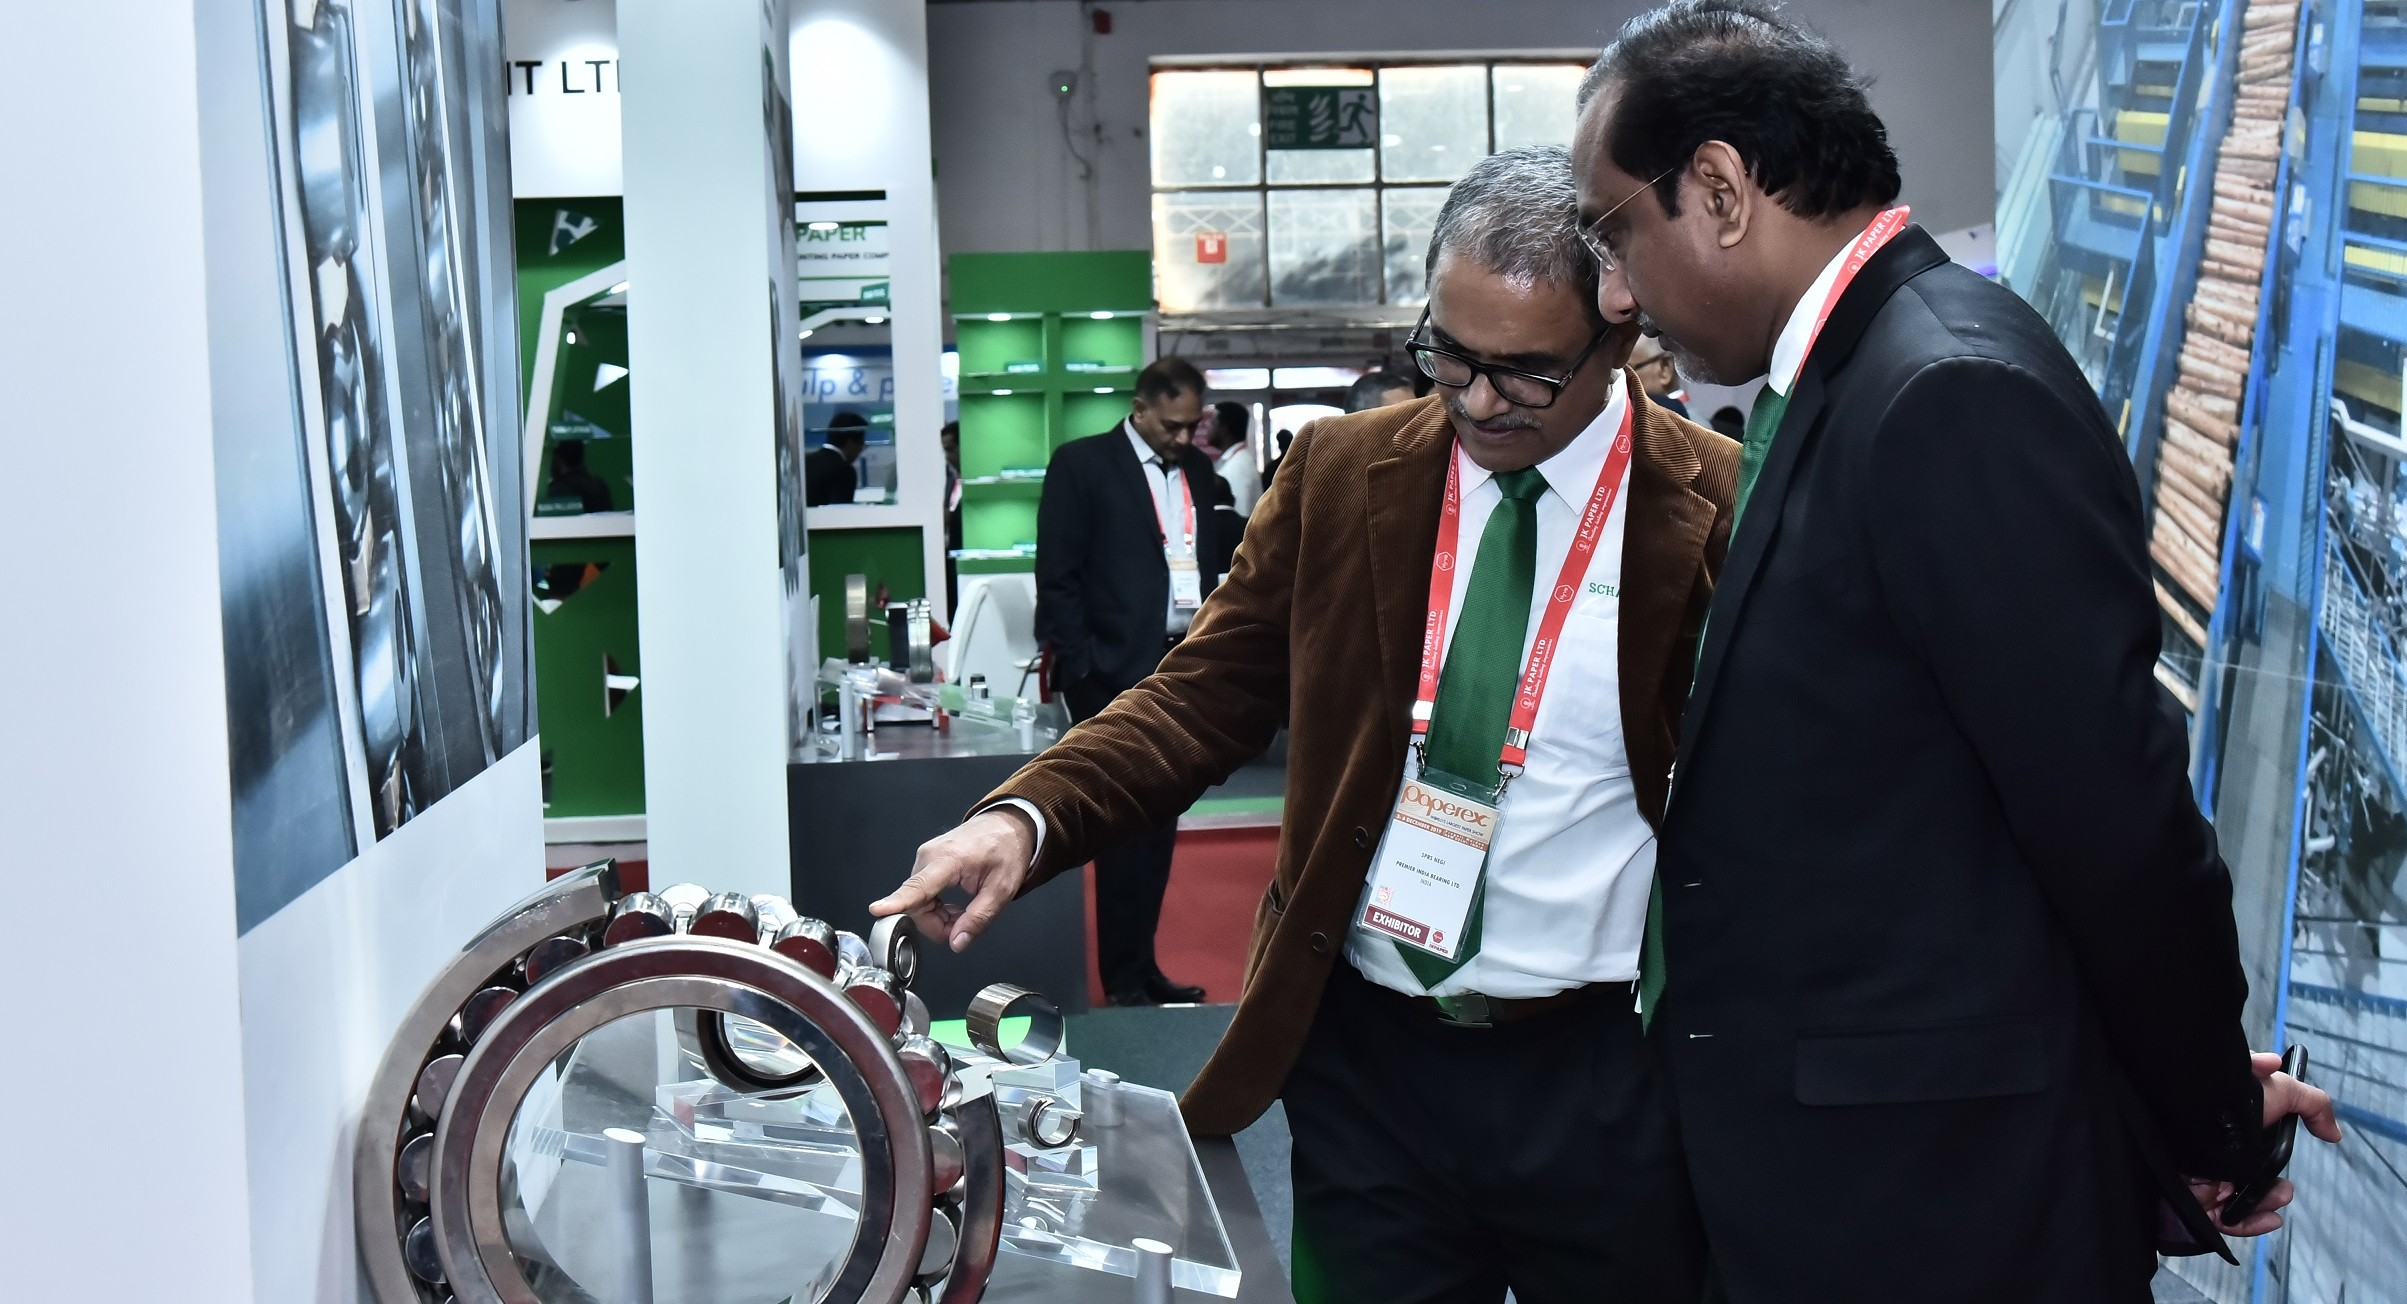 Premier Bearings at Paperex 2019 - 3 to 6 December, 2019